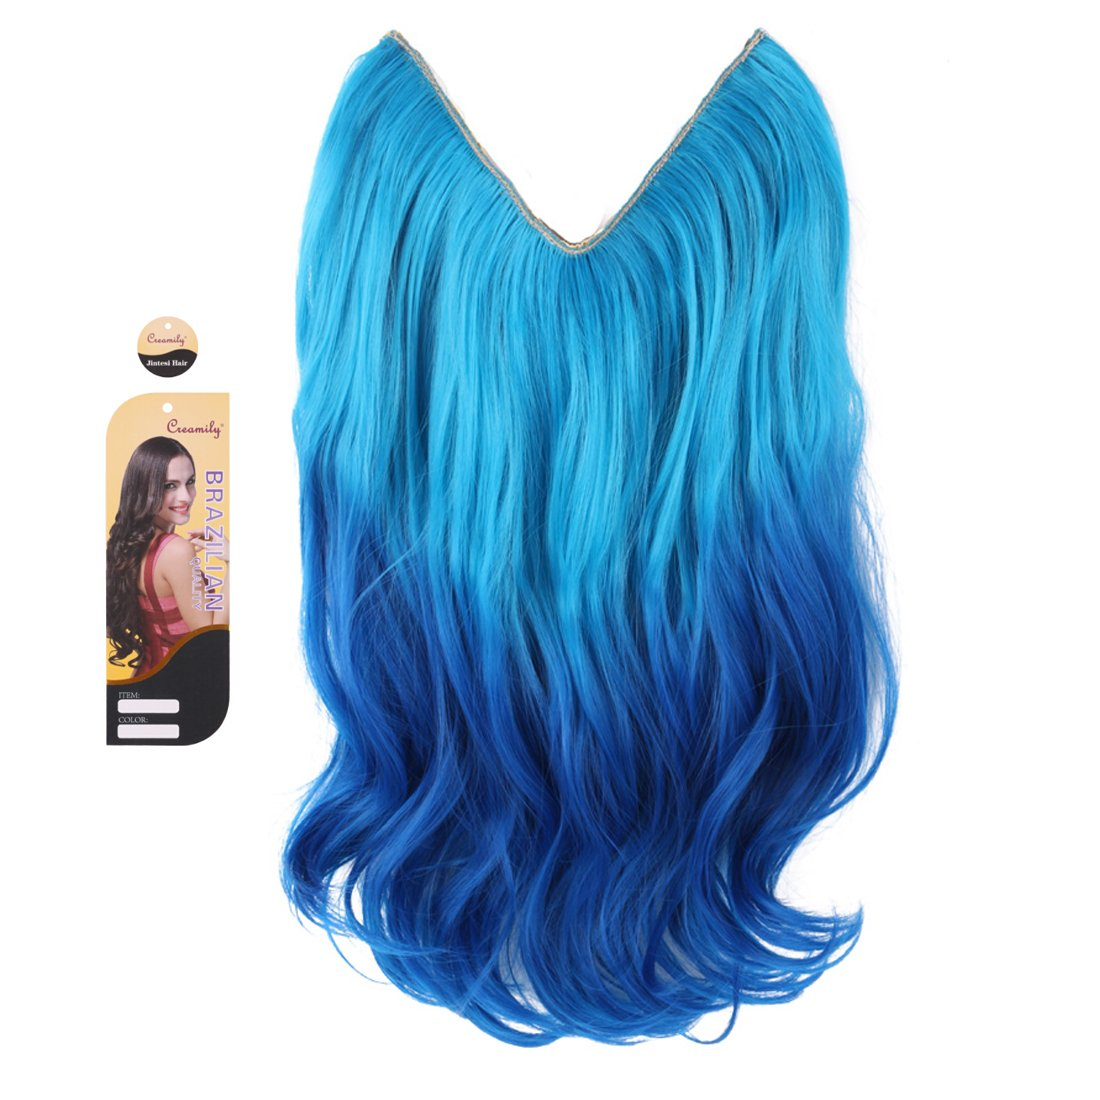 Amazon.com: Creamily Light Blue to Dark Blue Ombre Color Hair ...